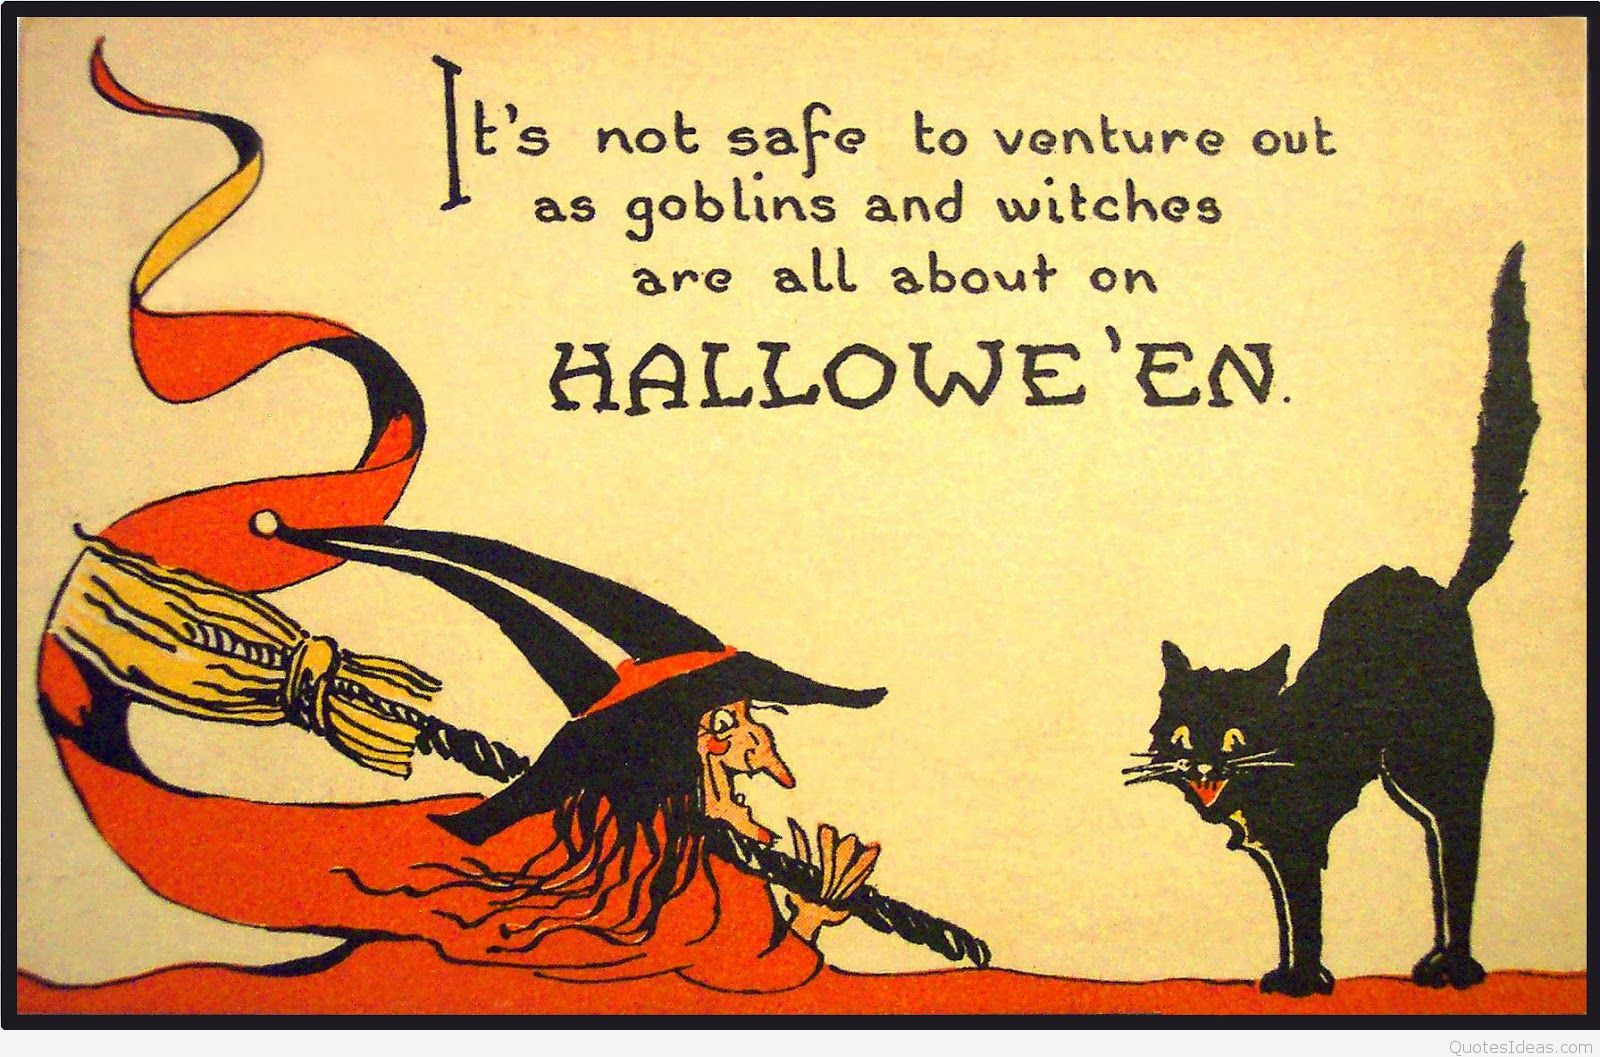 Funny Halloween Quotes. From Ghoulies And Ghosties And Long Leggety  Beasties And Things That Go Bump In The Night, Good Lord, Deliver Us! :  Scottish Saying